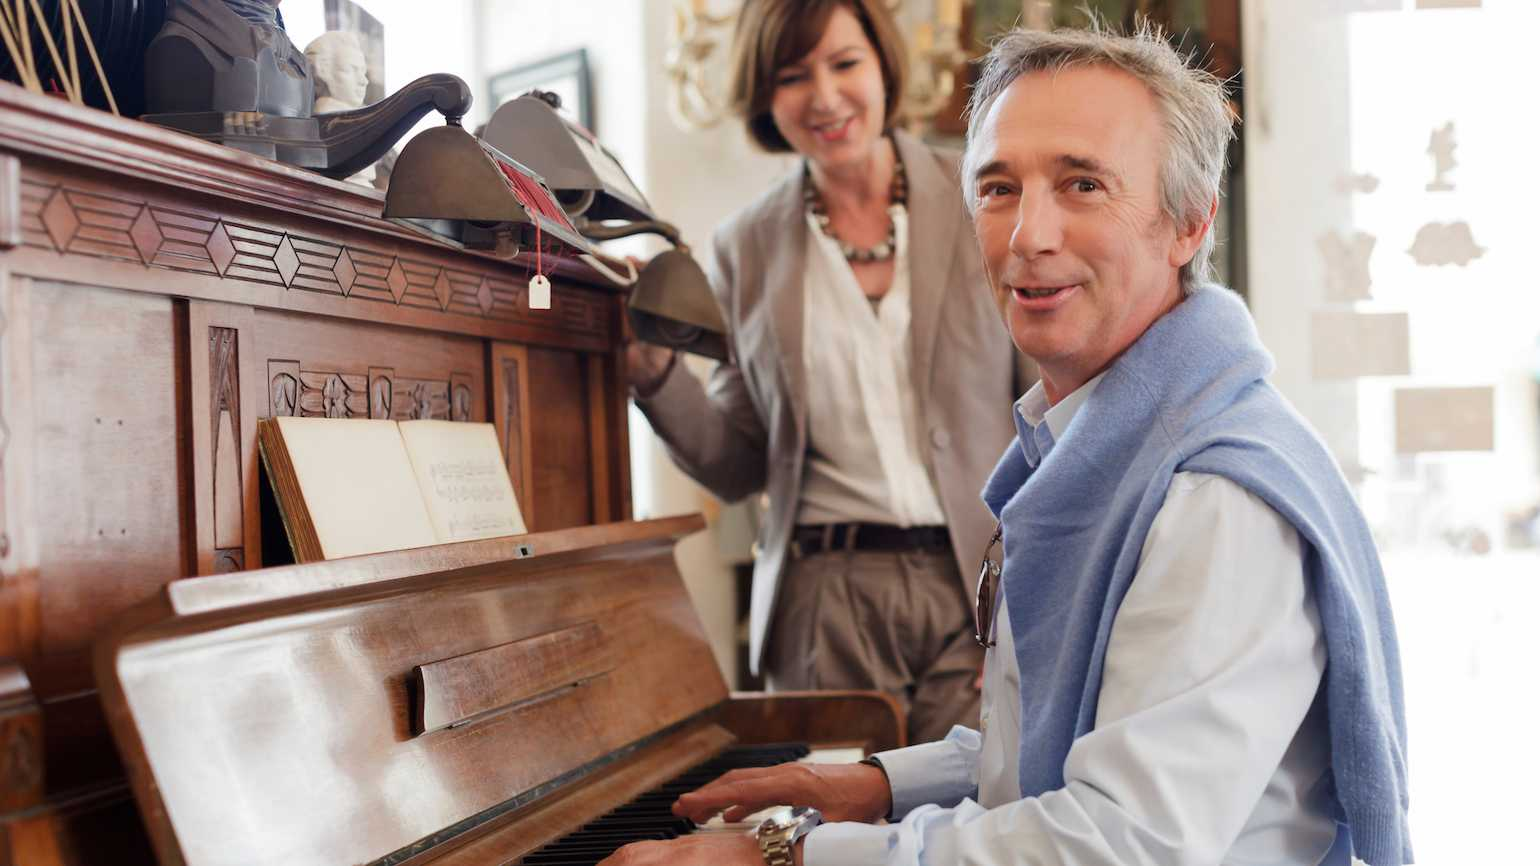 Music helps fight aging